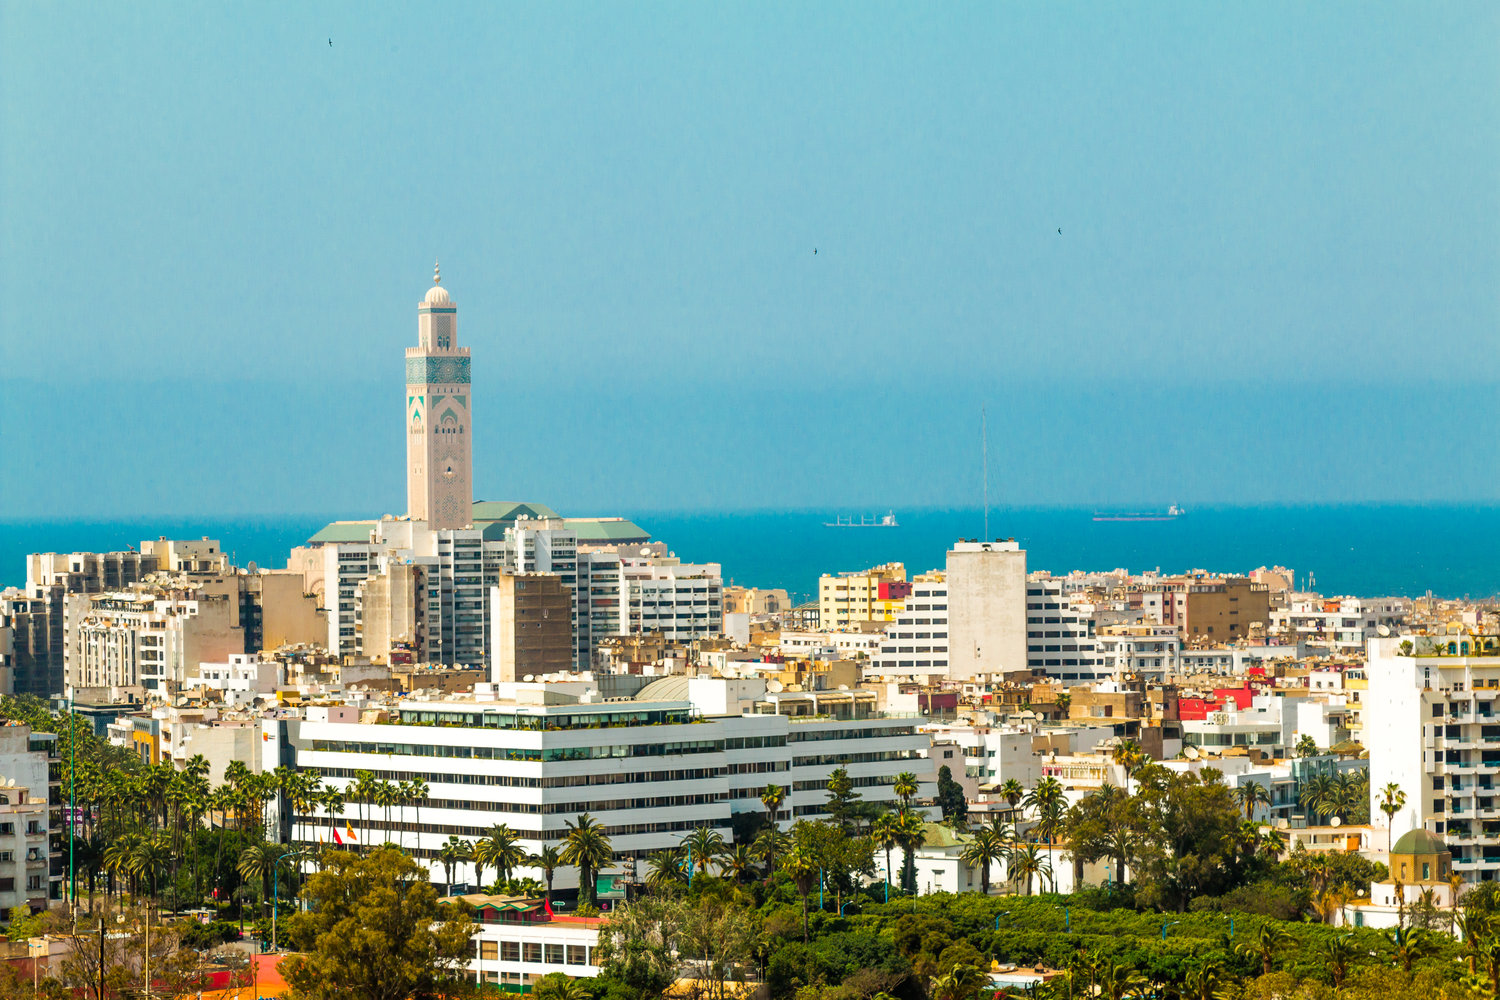 Pictures of Casablanca City + A GIVEAWAY